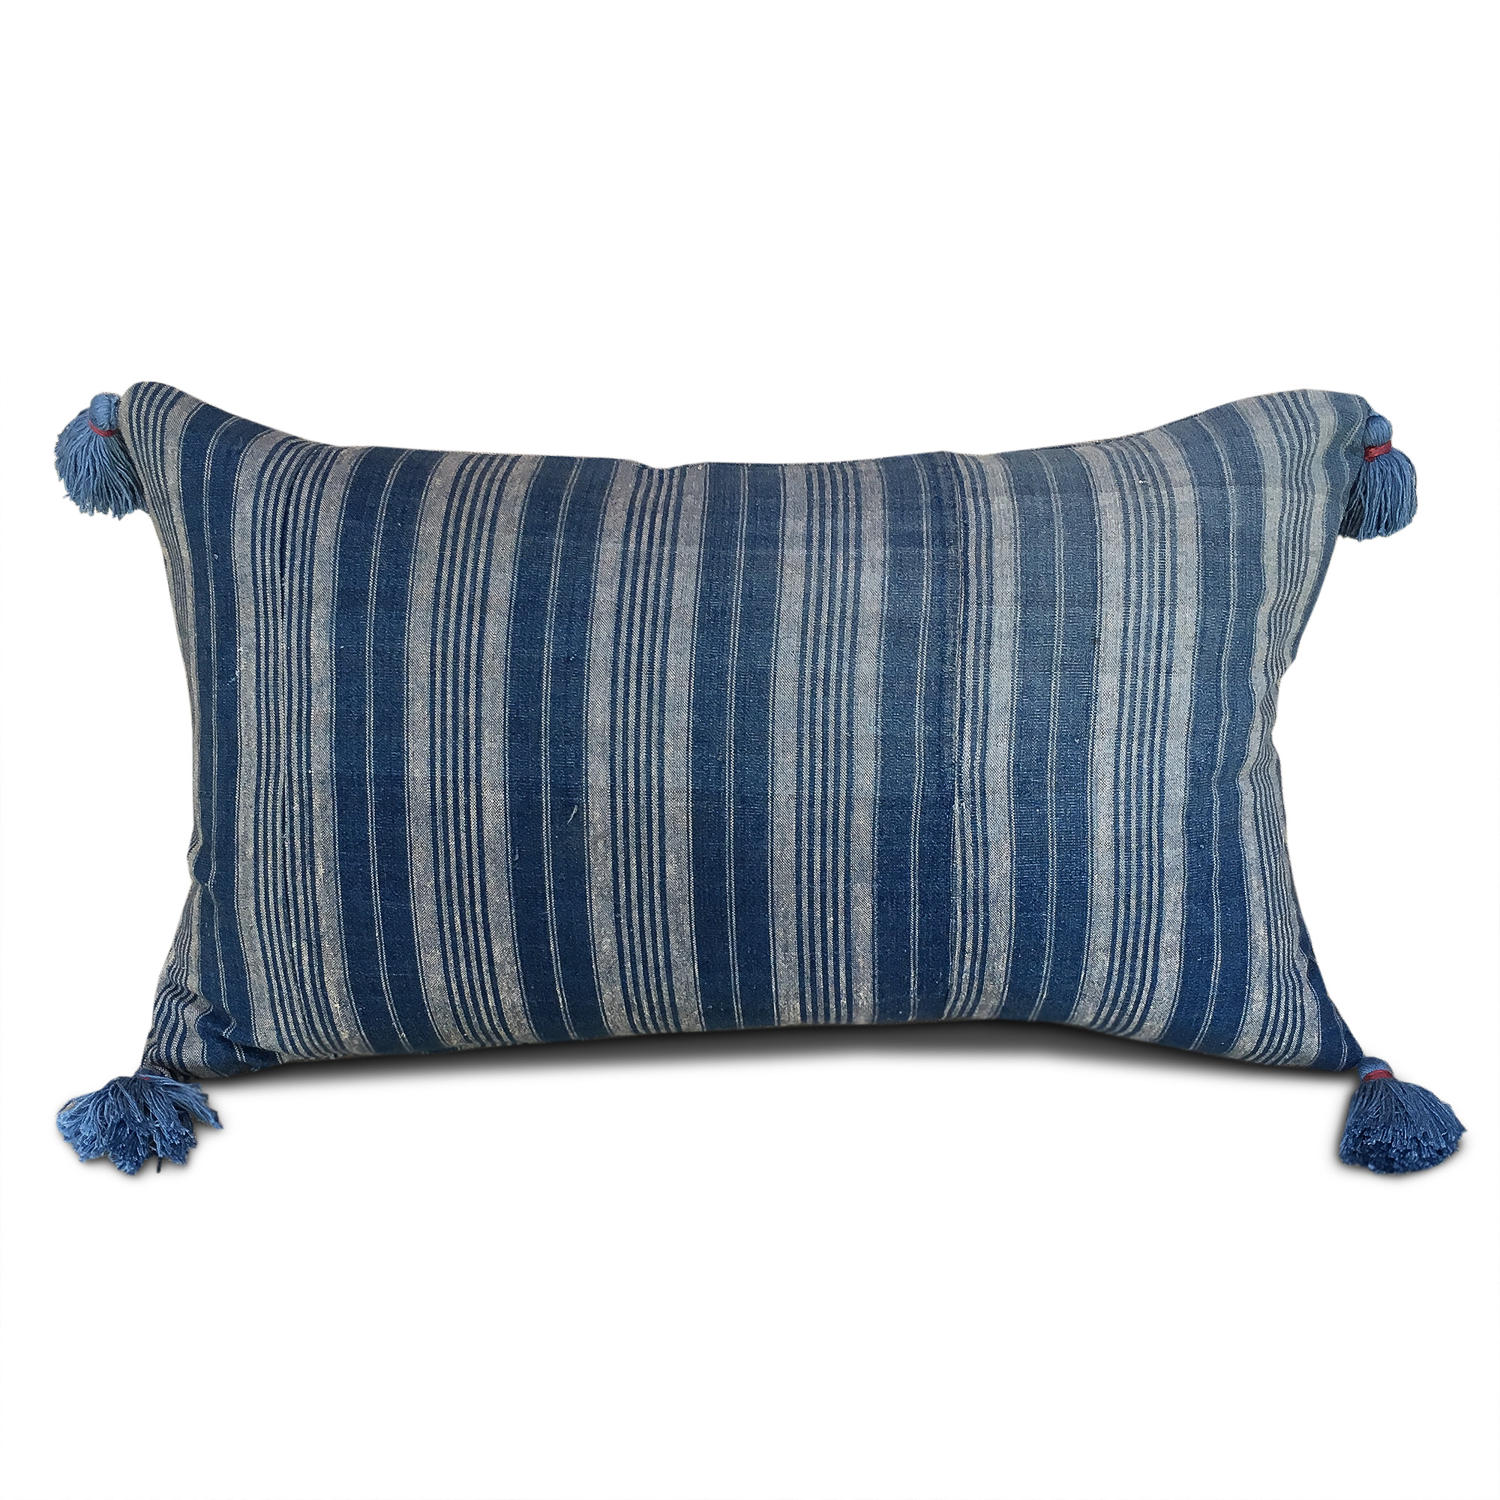 Minority Cushions with Bamboo Tassels